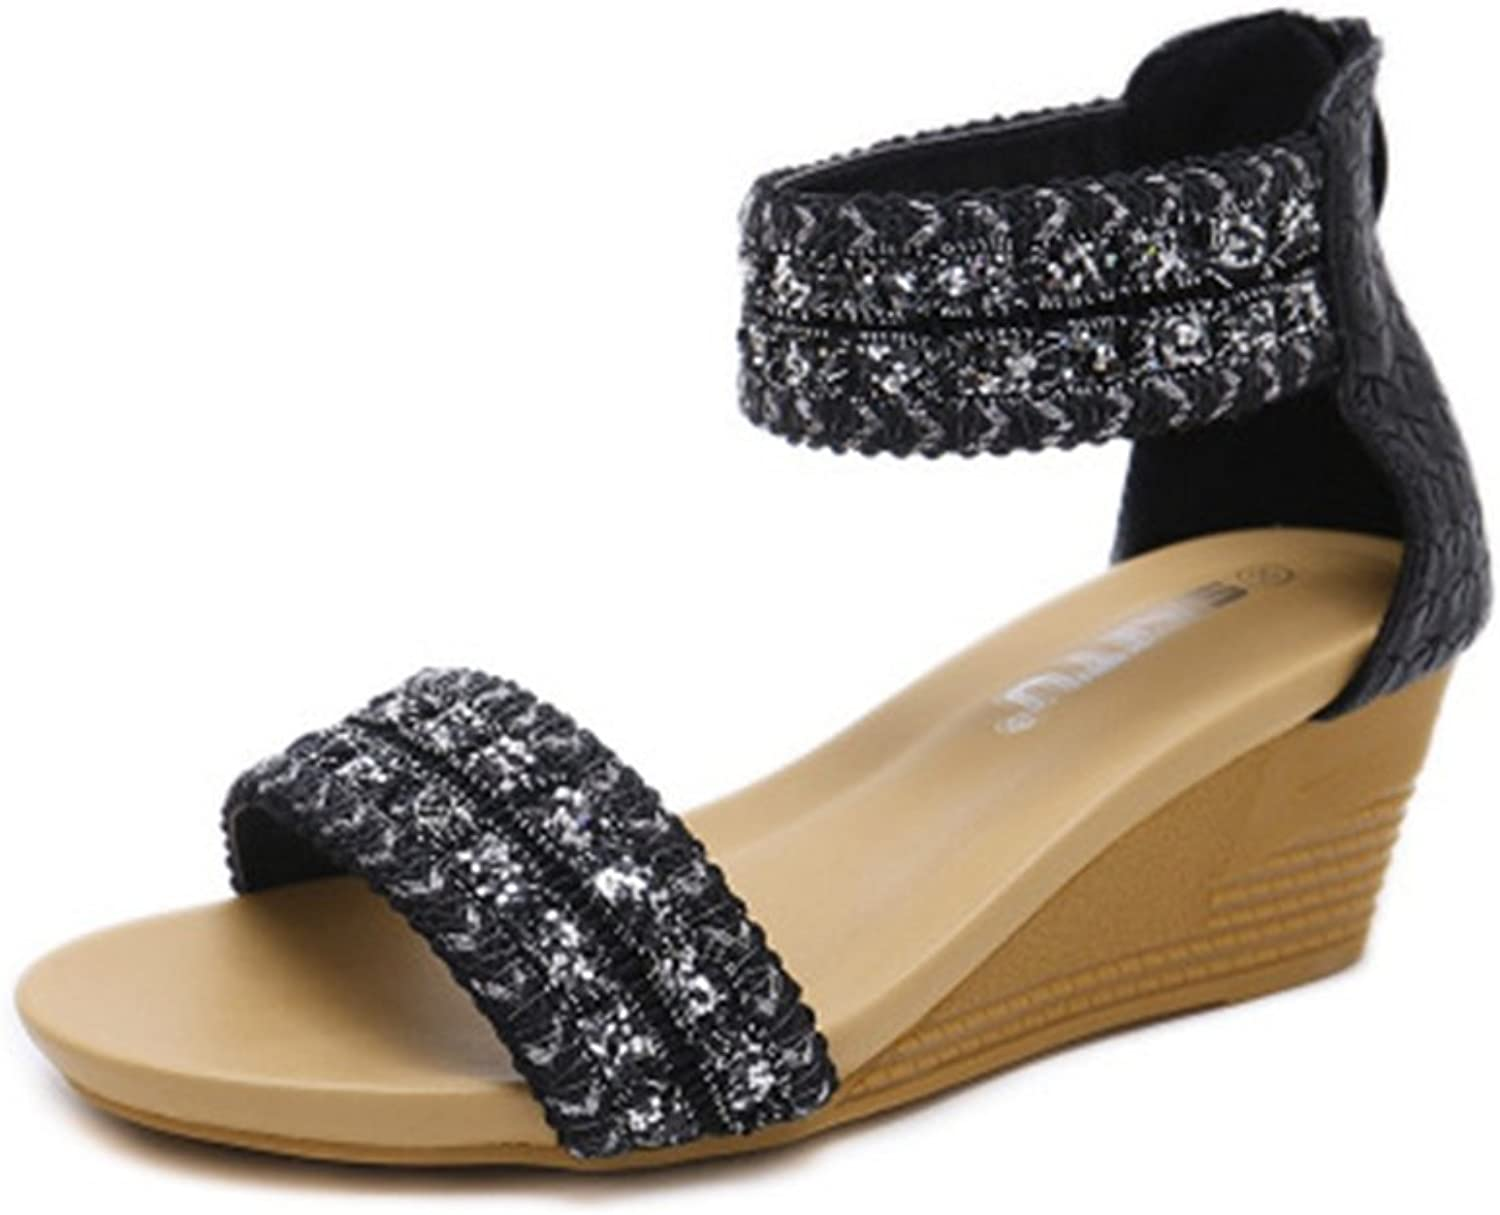 GIY Women's Bohemian Wedges Platform Sandals with Sparkly Sequins Open Toe Zipper Chunky High Heel Sandal